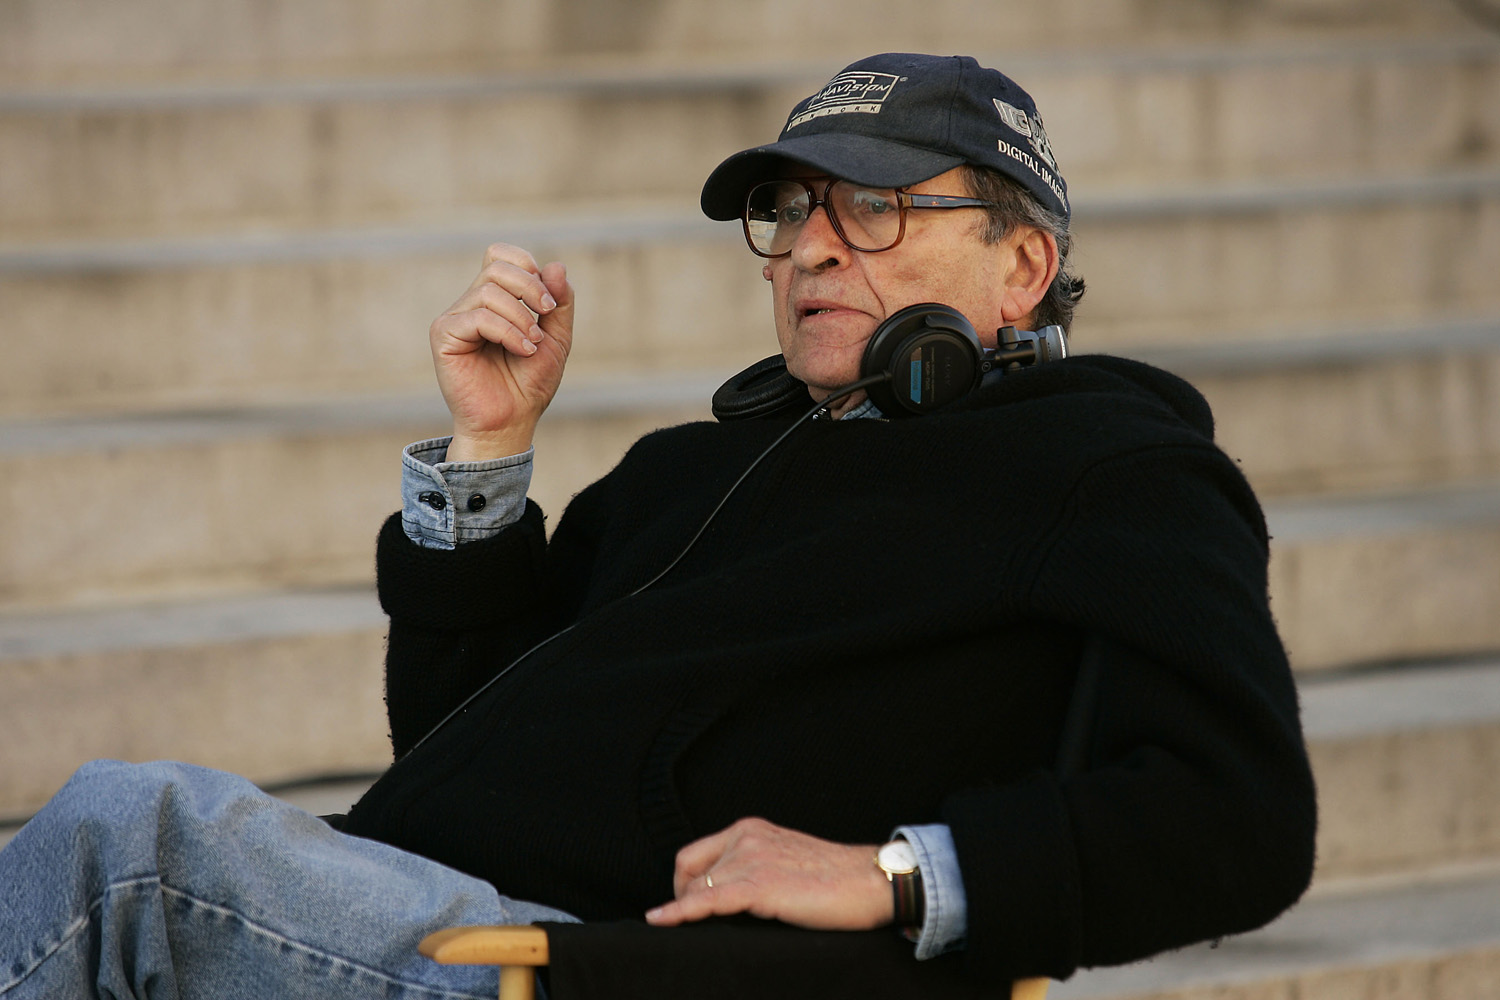 Sidney Lumet - Film Director